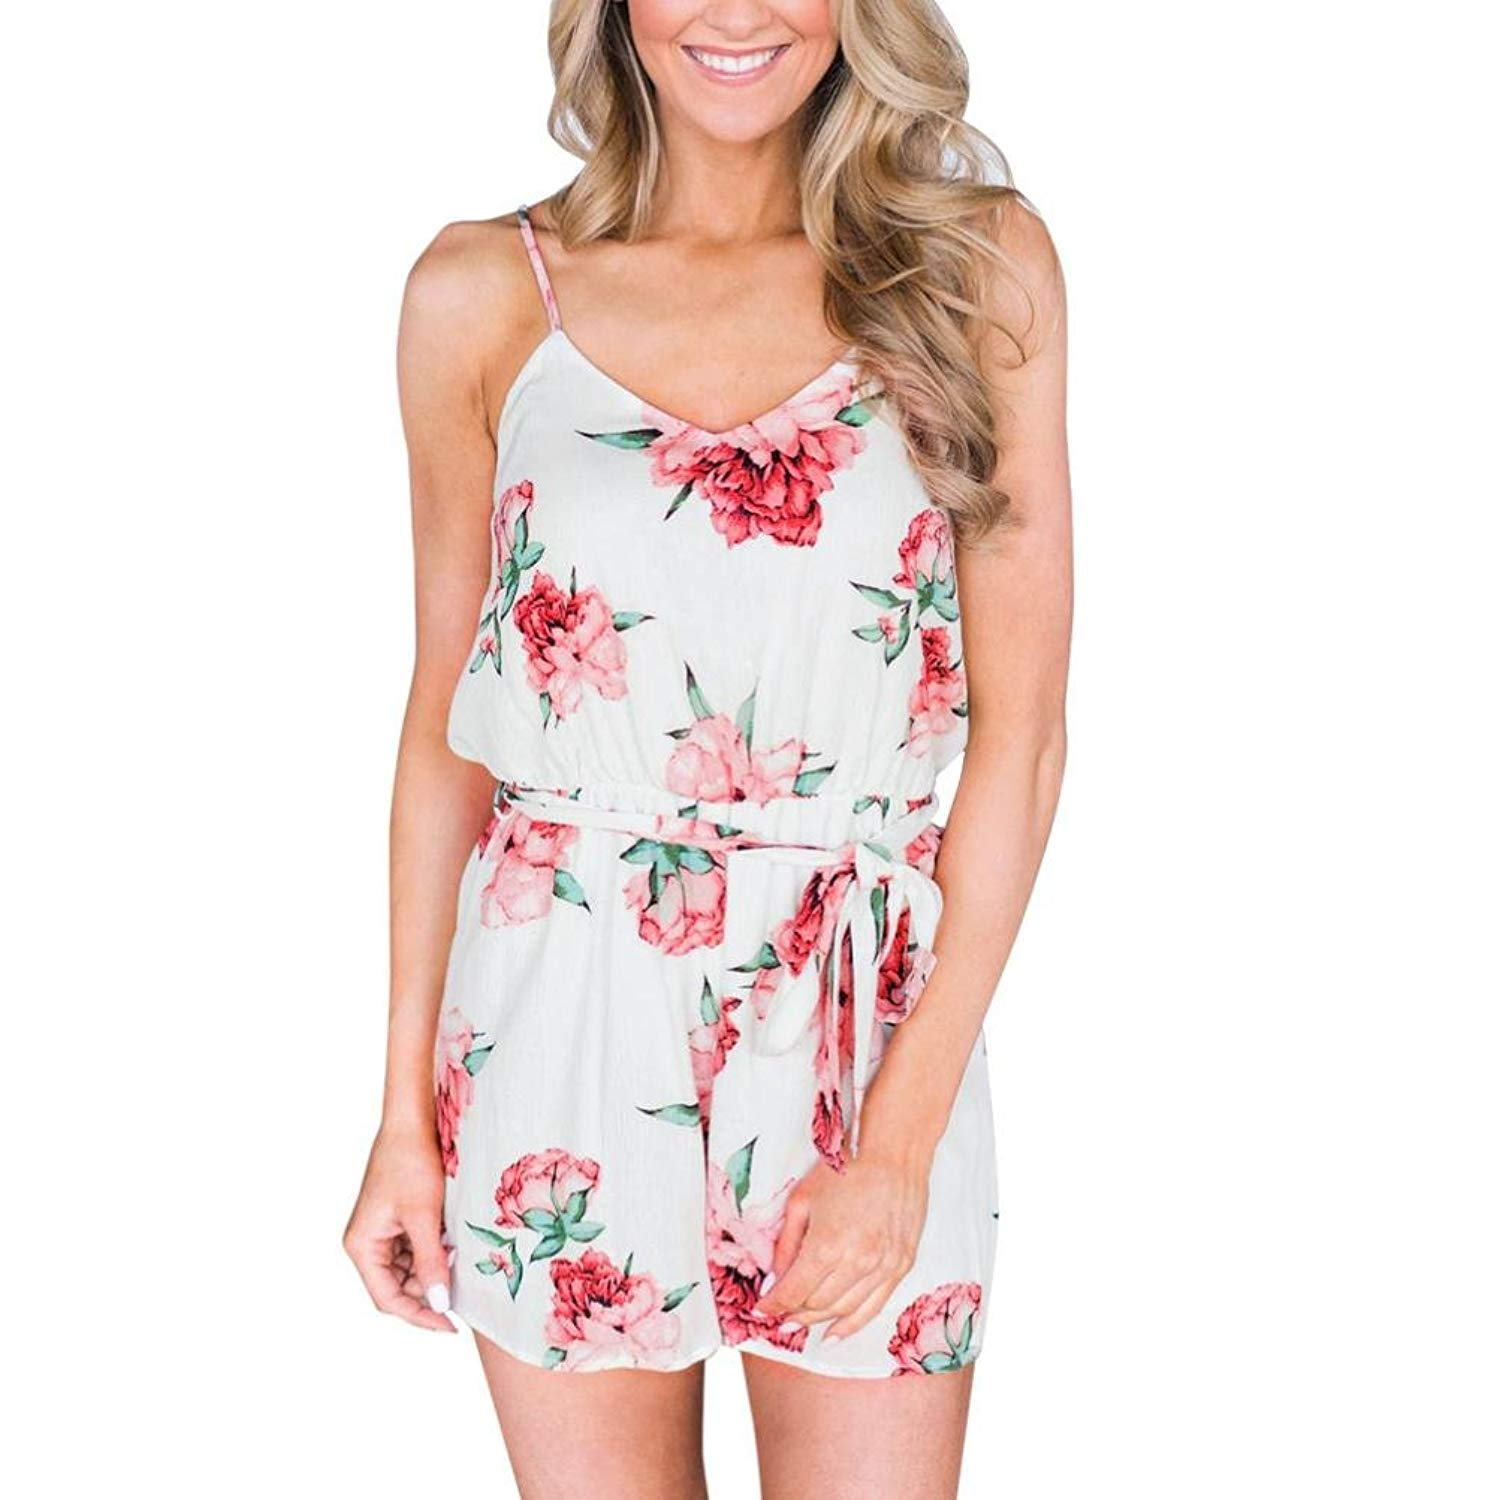 41bebca5c15 Get Quotations · TOTOD Women Summer Fashion Floral Sleeveless Fashion  Jumpsuits Playsuits Playsuits Rompers Wide Leg Pants